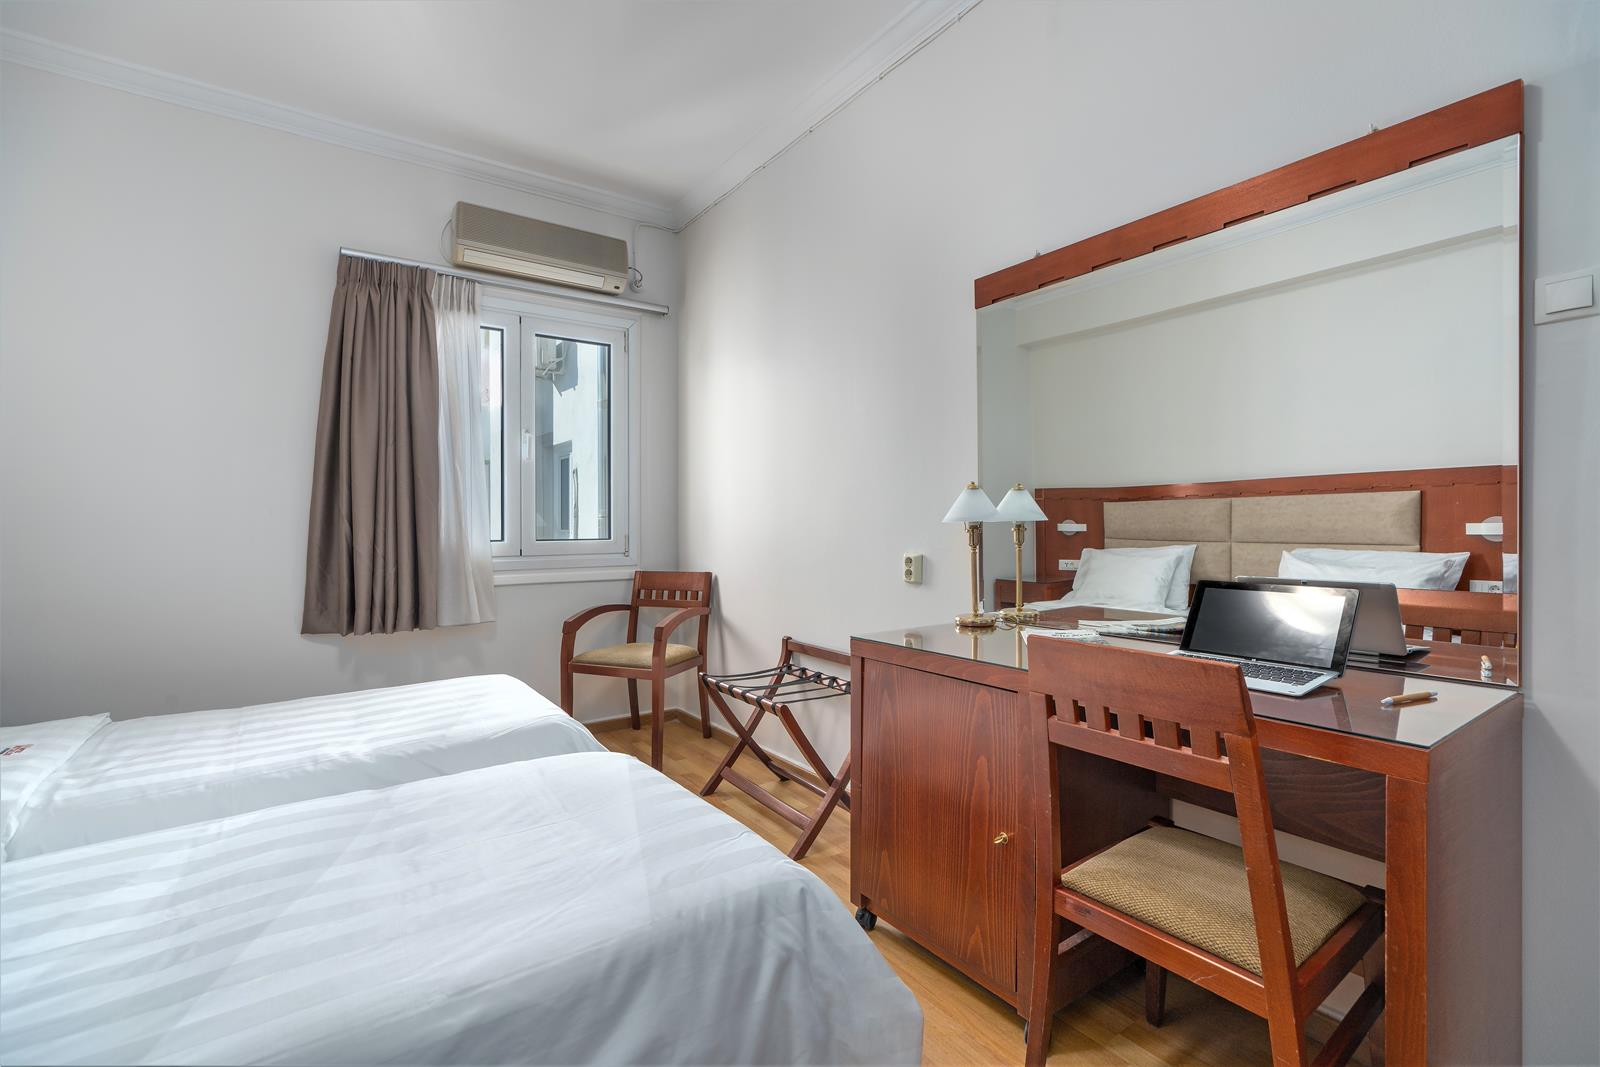 athens hotels - Hotel Attalos Athens